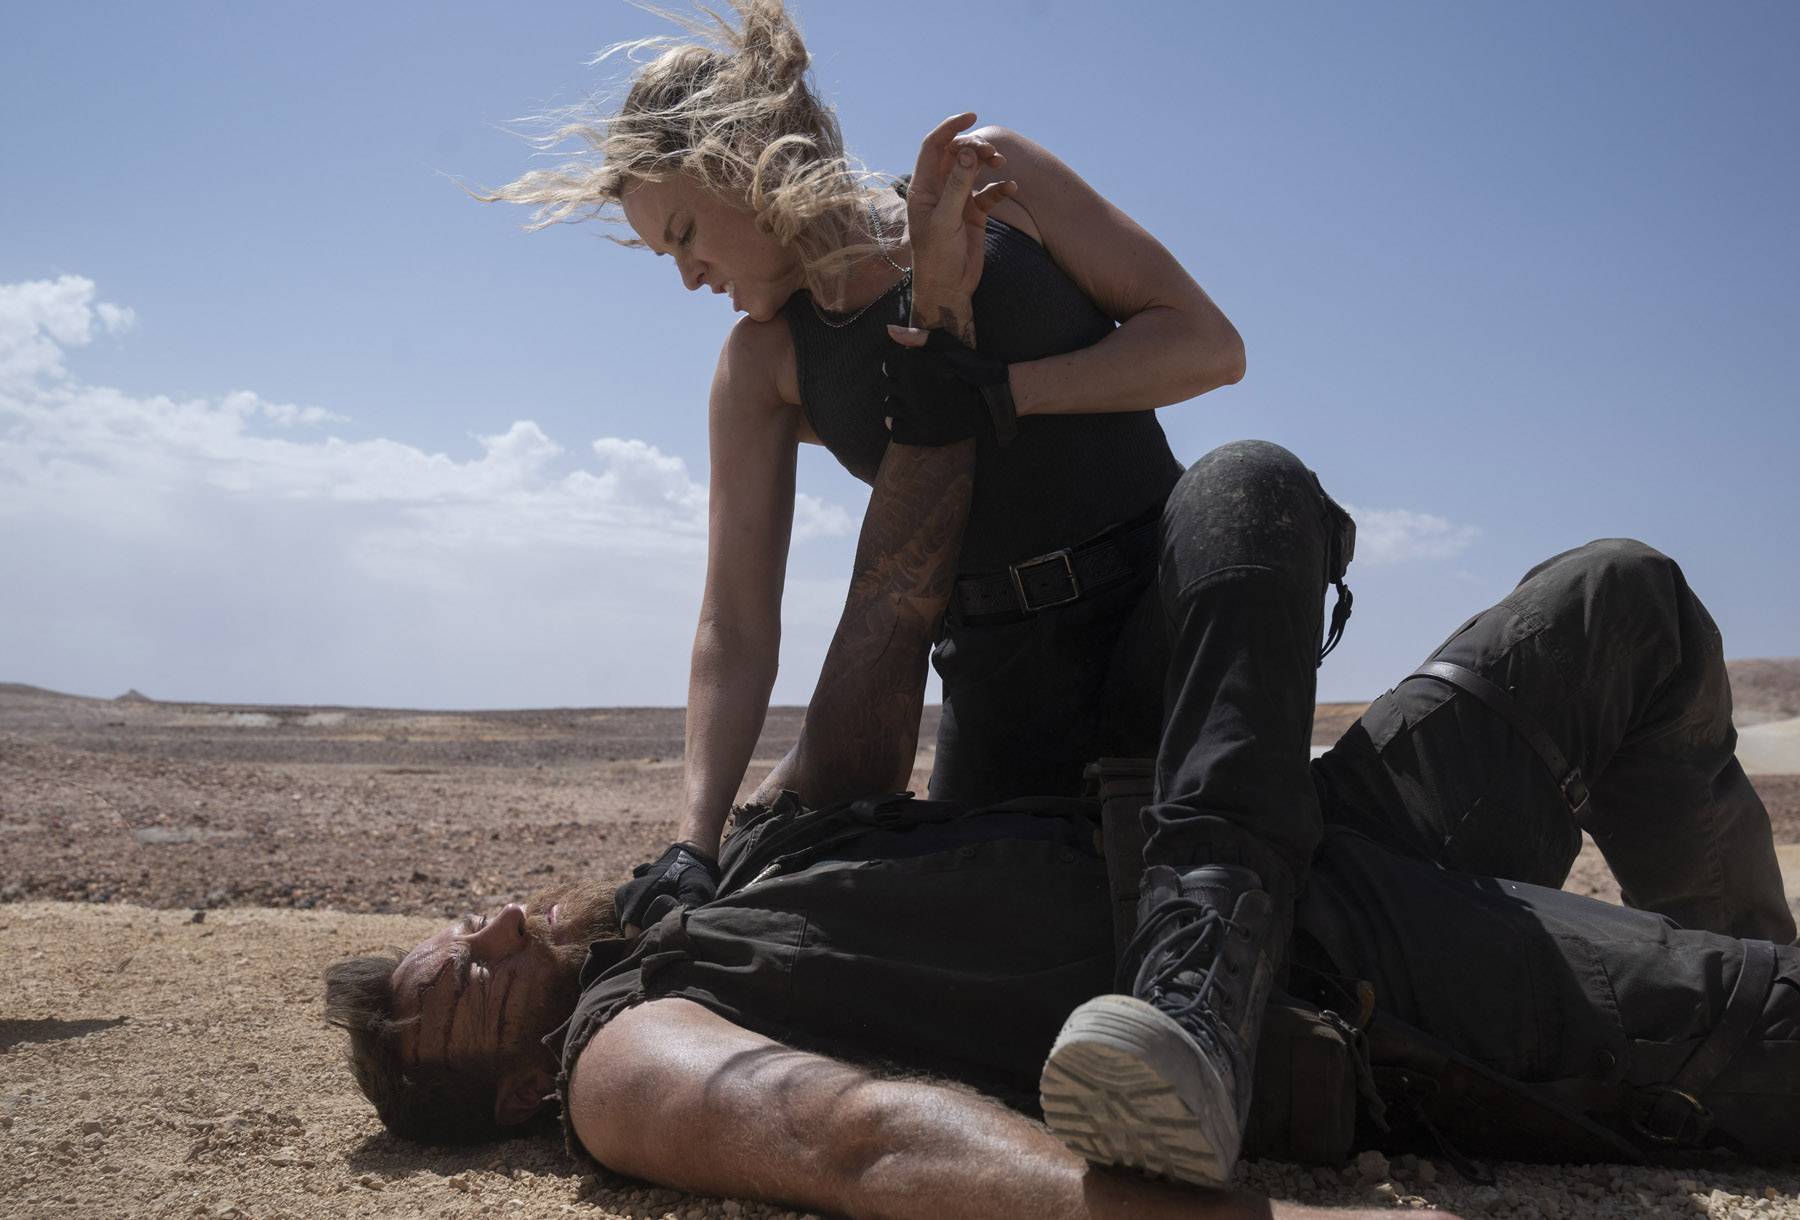 """(L-r) JOSH LAWSON as Kano and JESSICA MCNAMEEas Sonya Blade in New Line Cinema's action adventure """"Mortal Kombat,"""" a Warner Bros. Pictures release."""